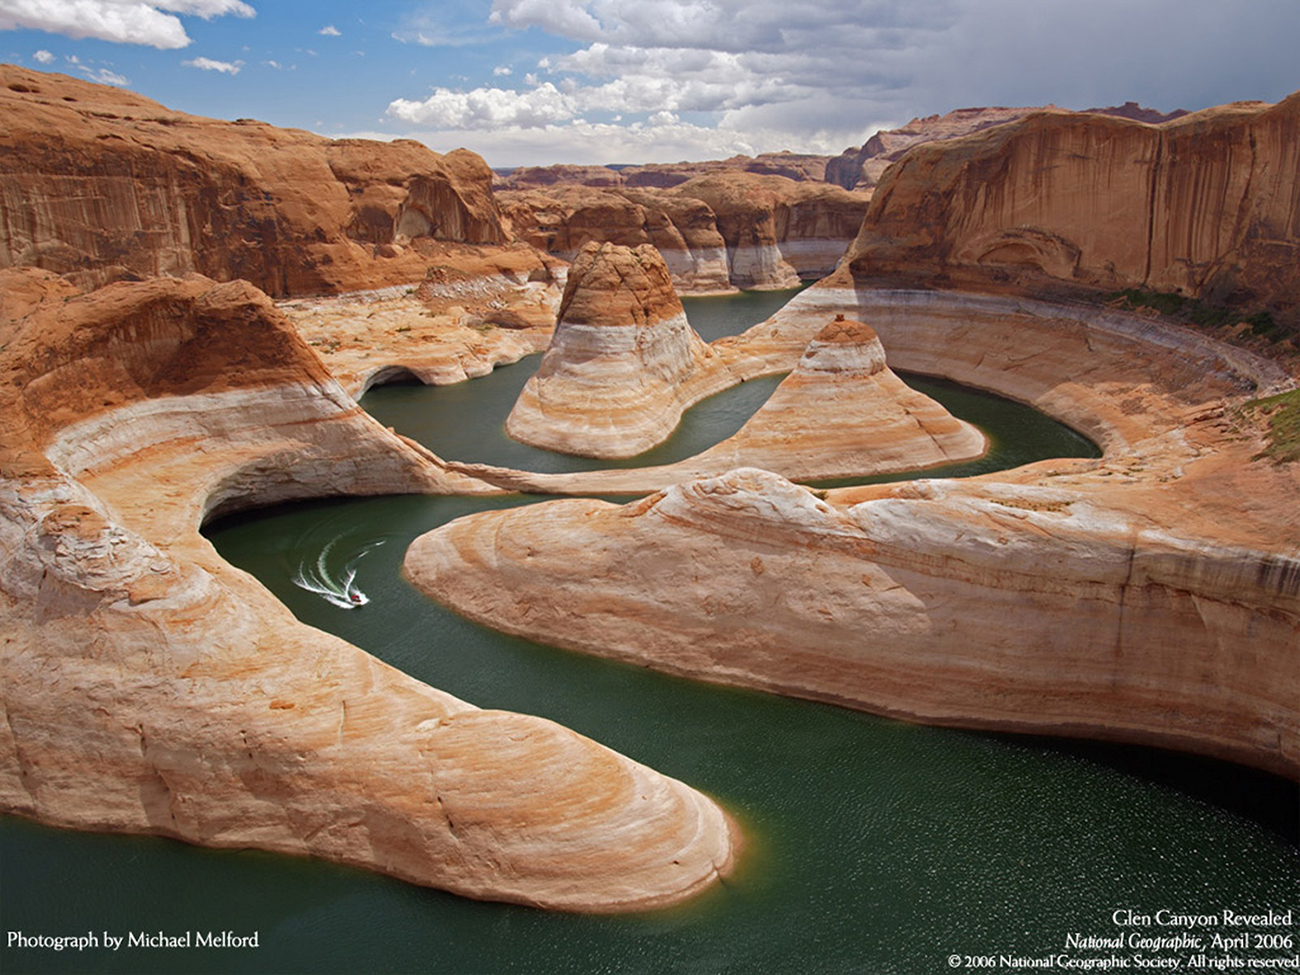 The Drought Apocalypse Approaches as the Colorado River Basin Dries Up